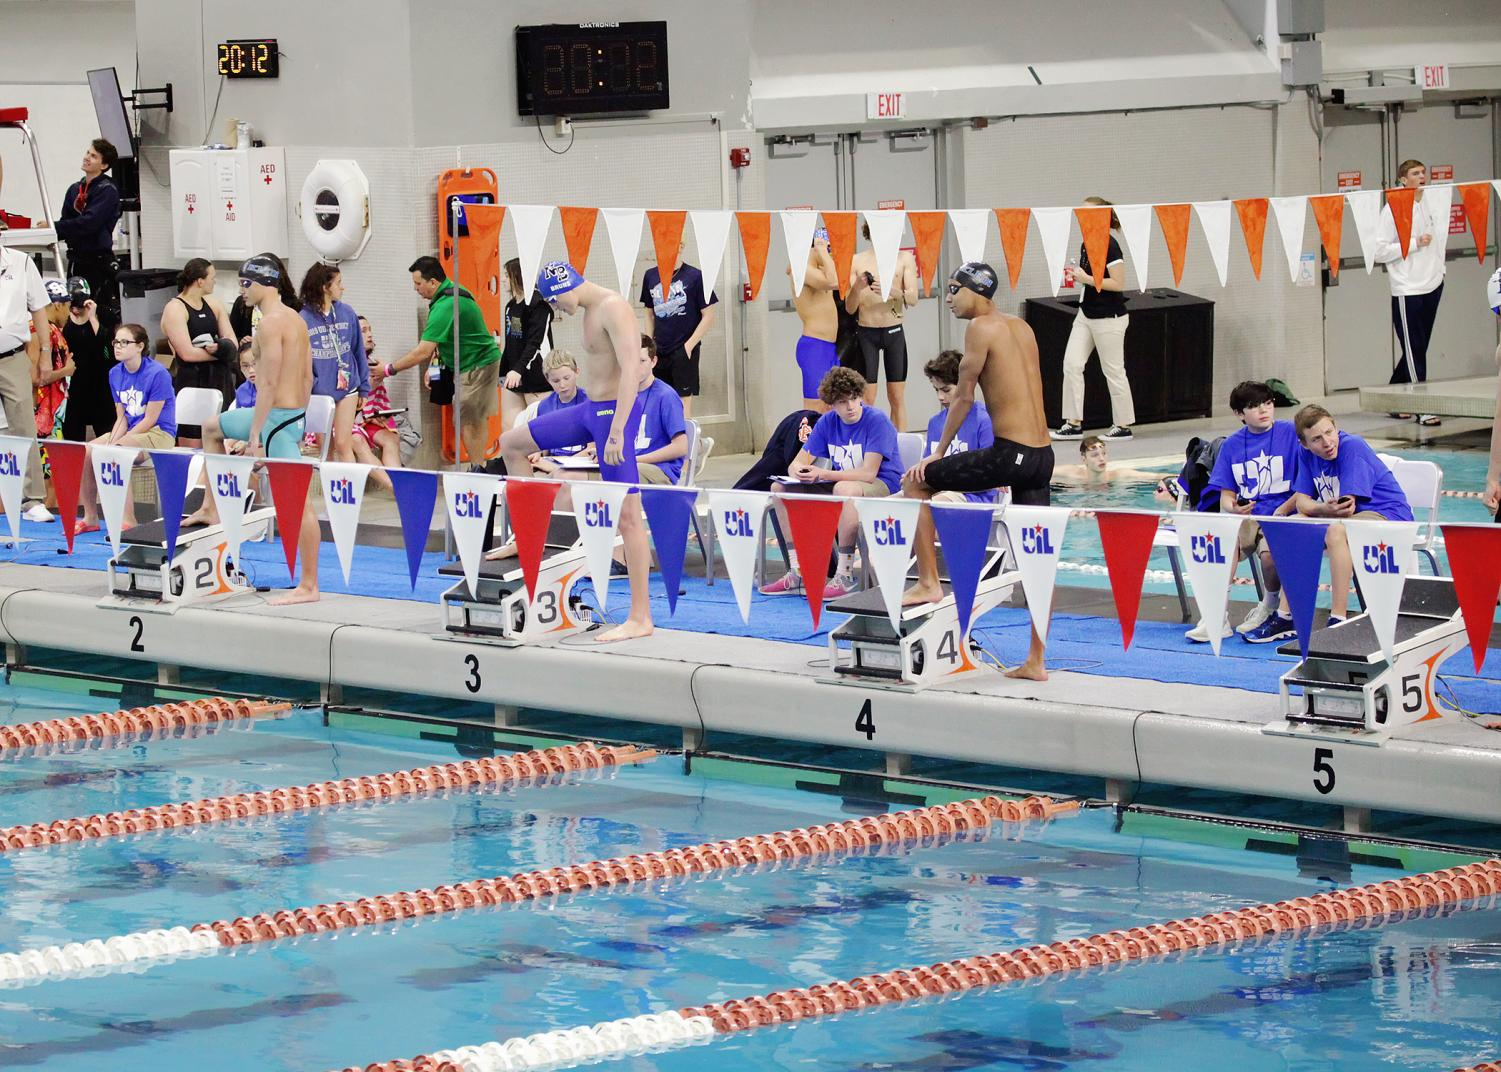 Swimmers+stepping+up+to+the+diving+boards.